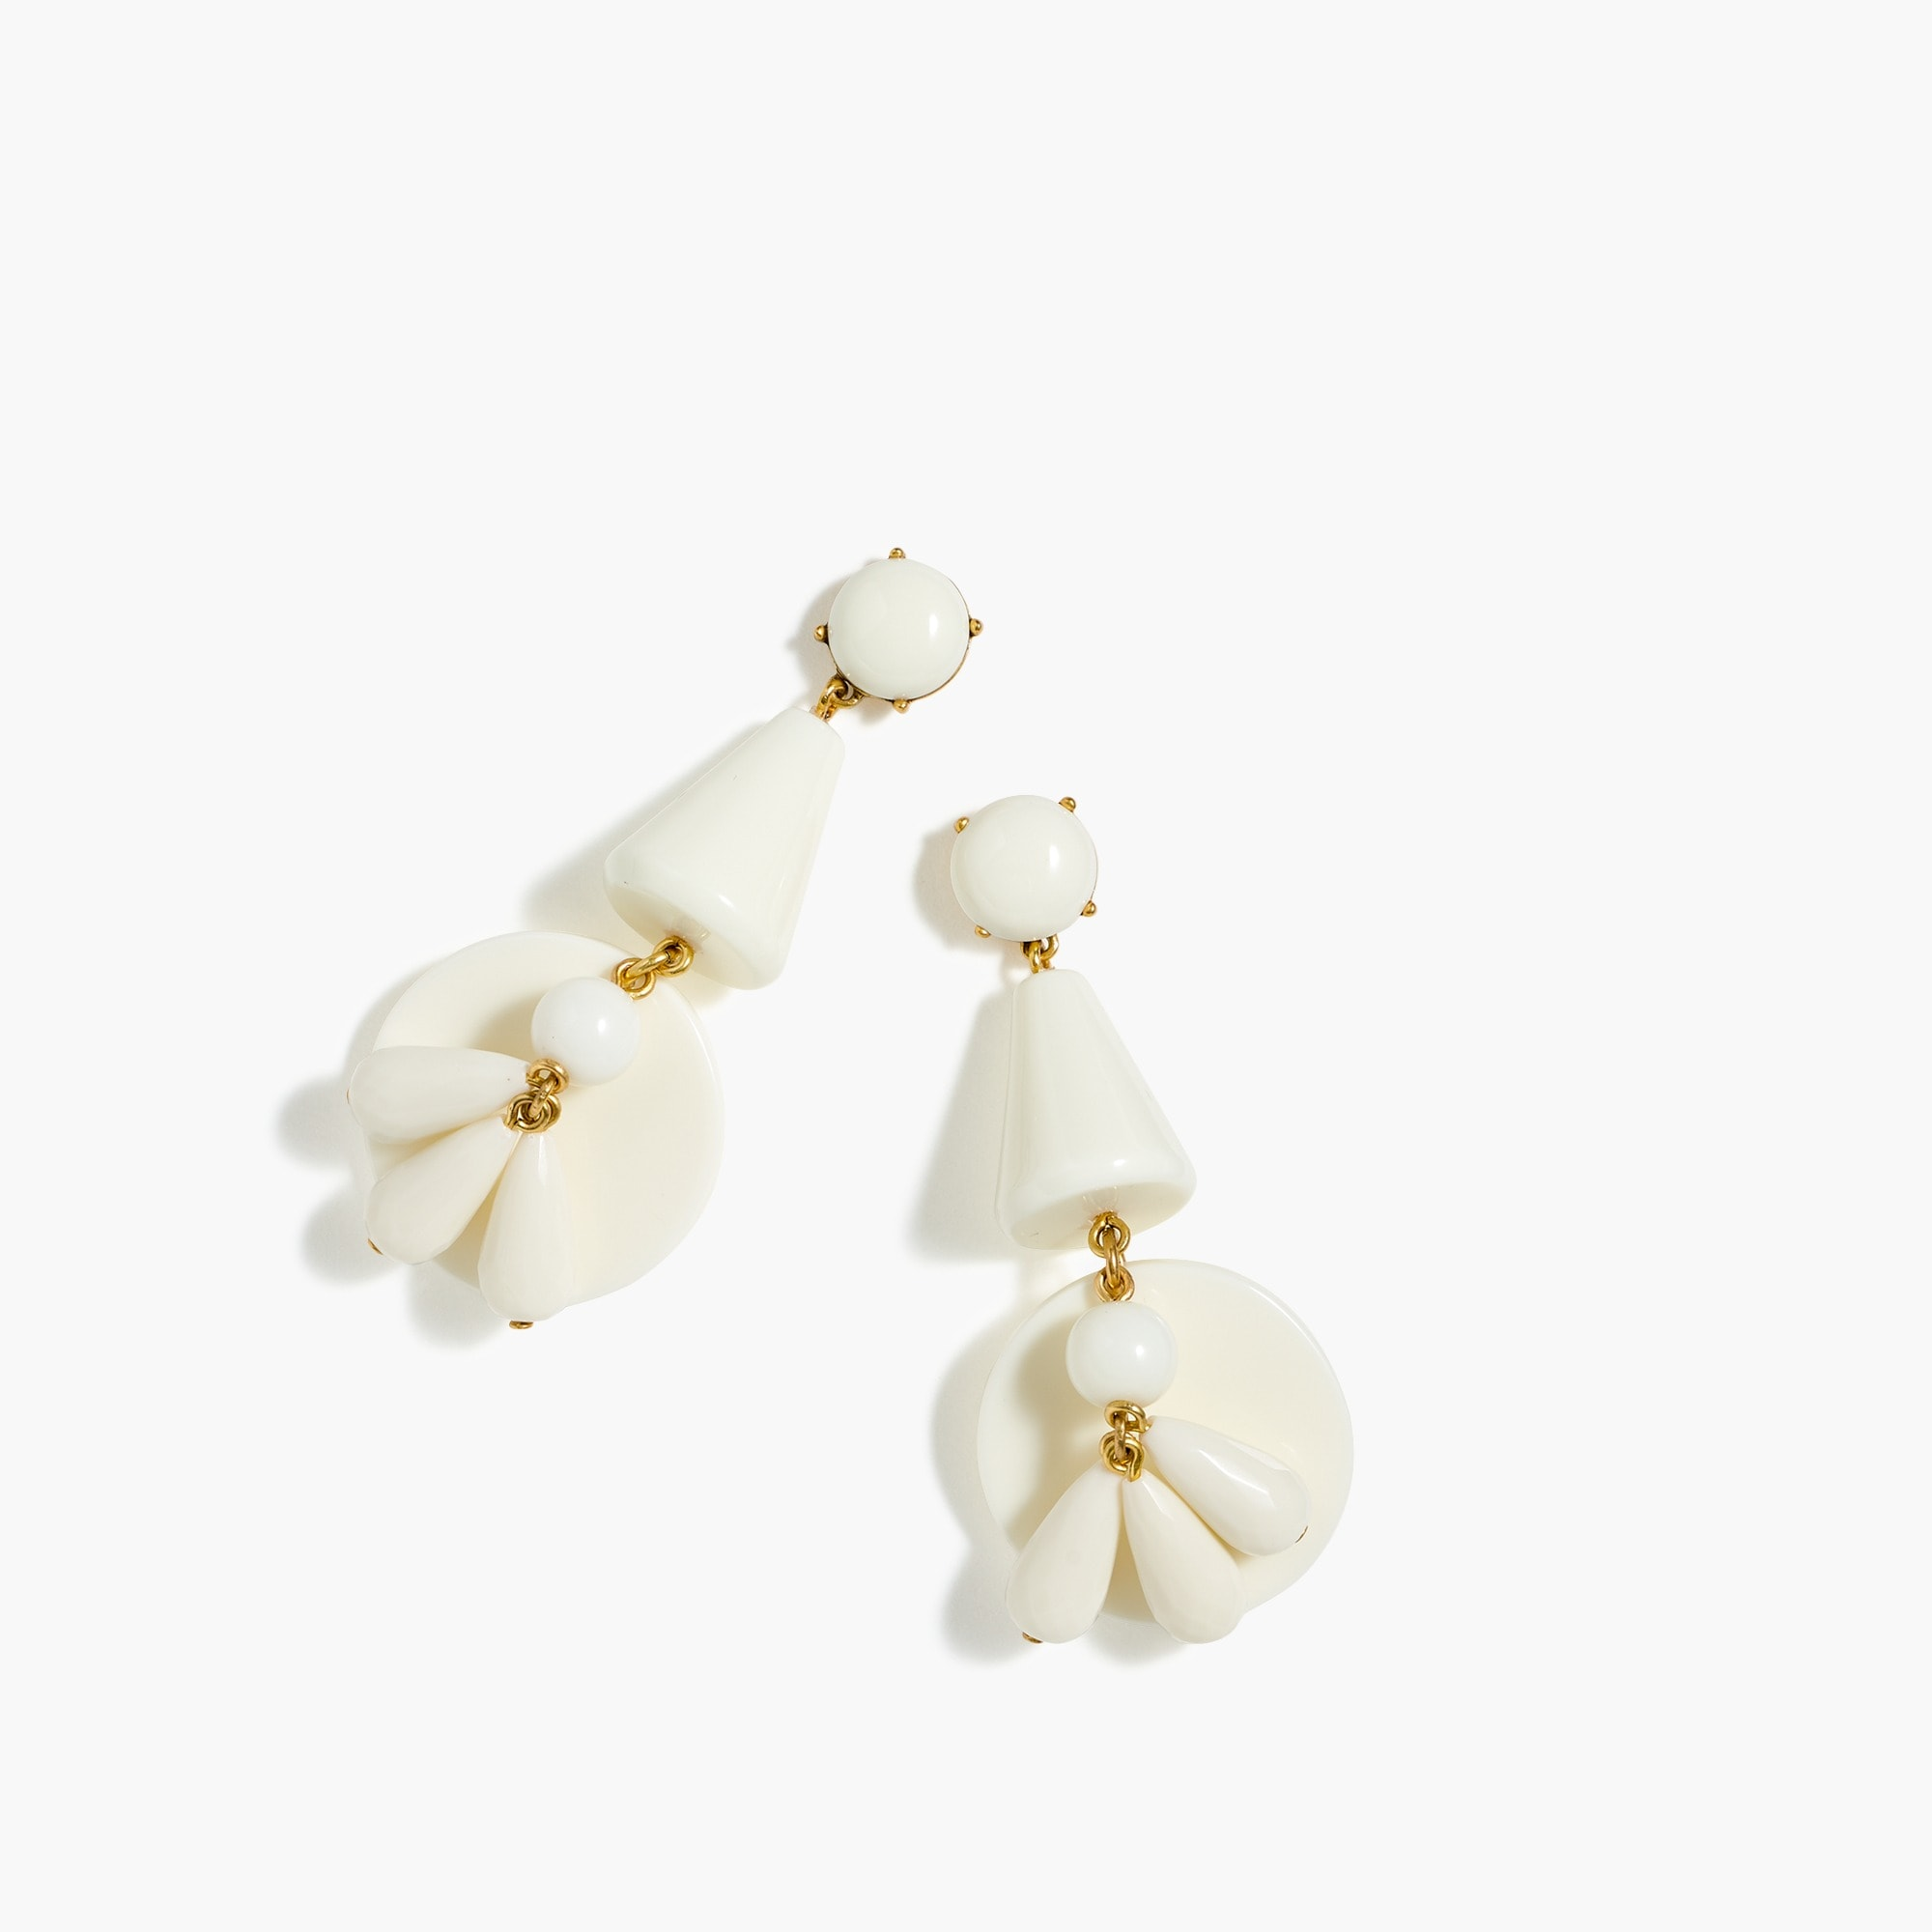 Ivory wind-bell earrings